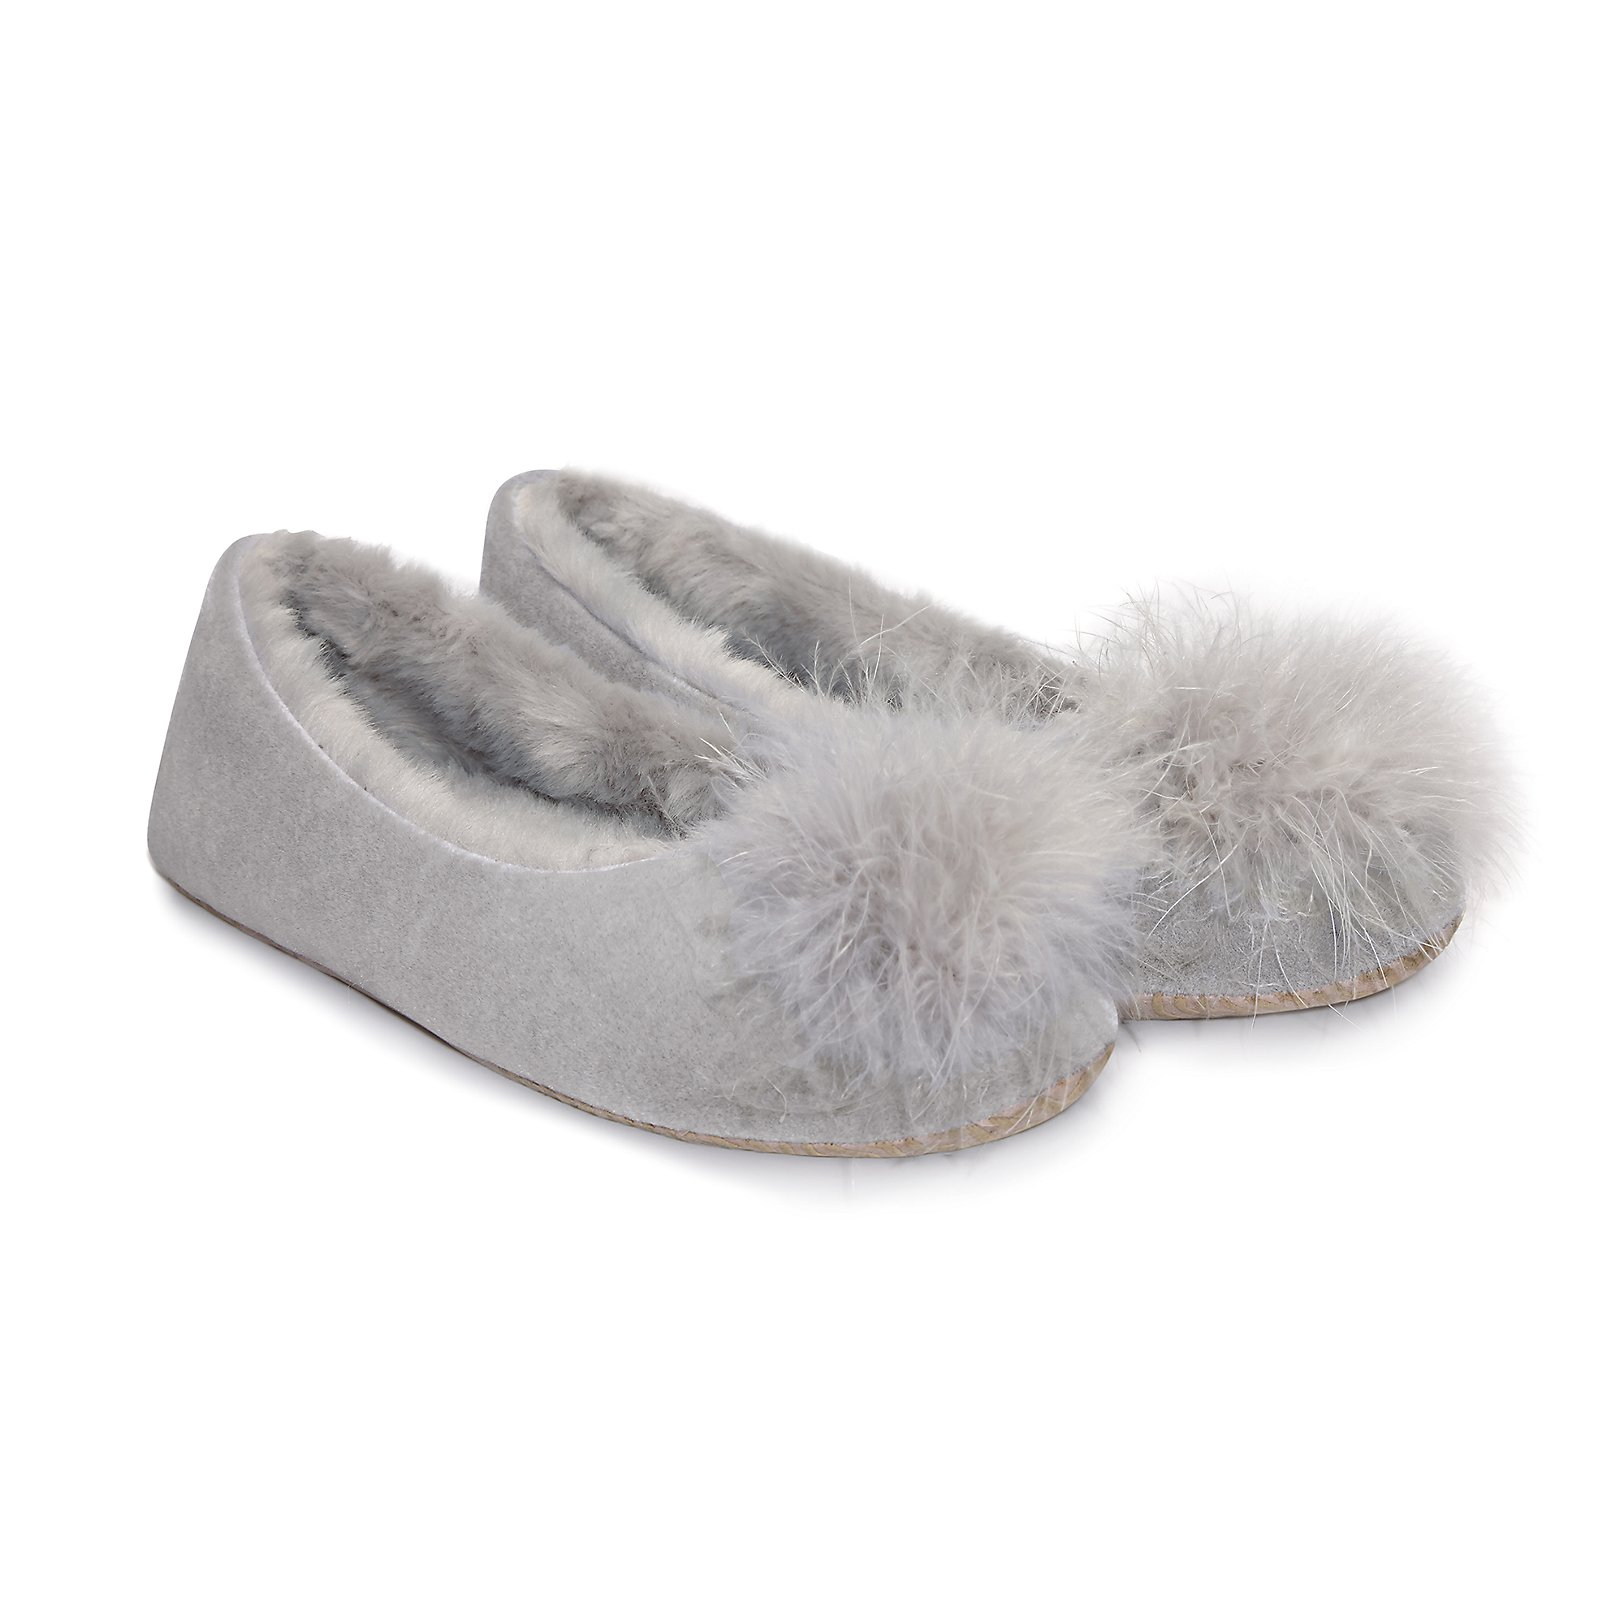 Mens Bedroom Slippers Made In Usa Slippers Luxury Slippers Bed Socks The White Company Uk